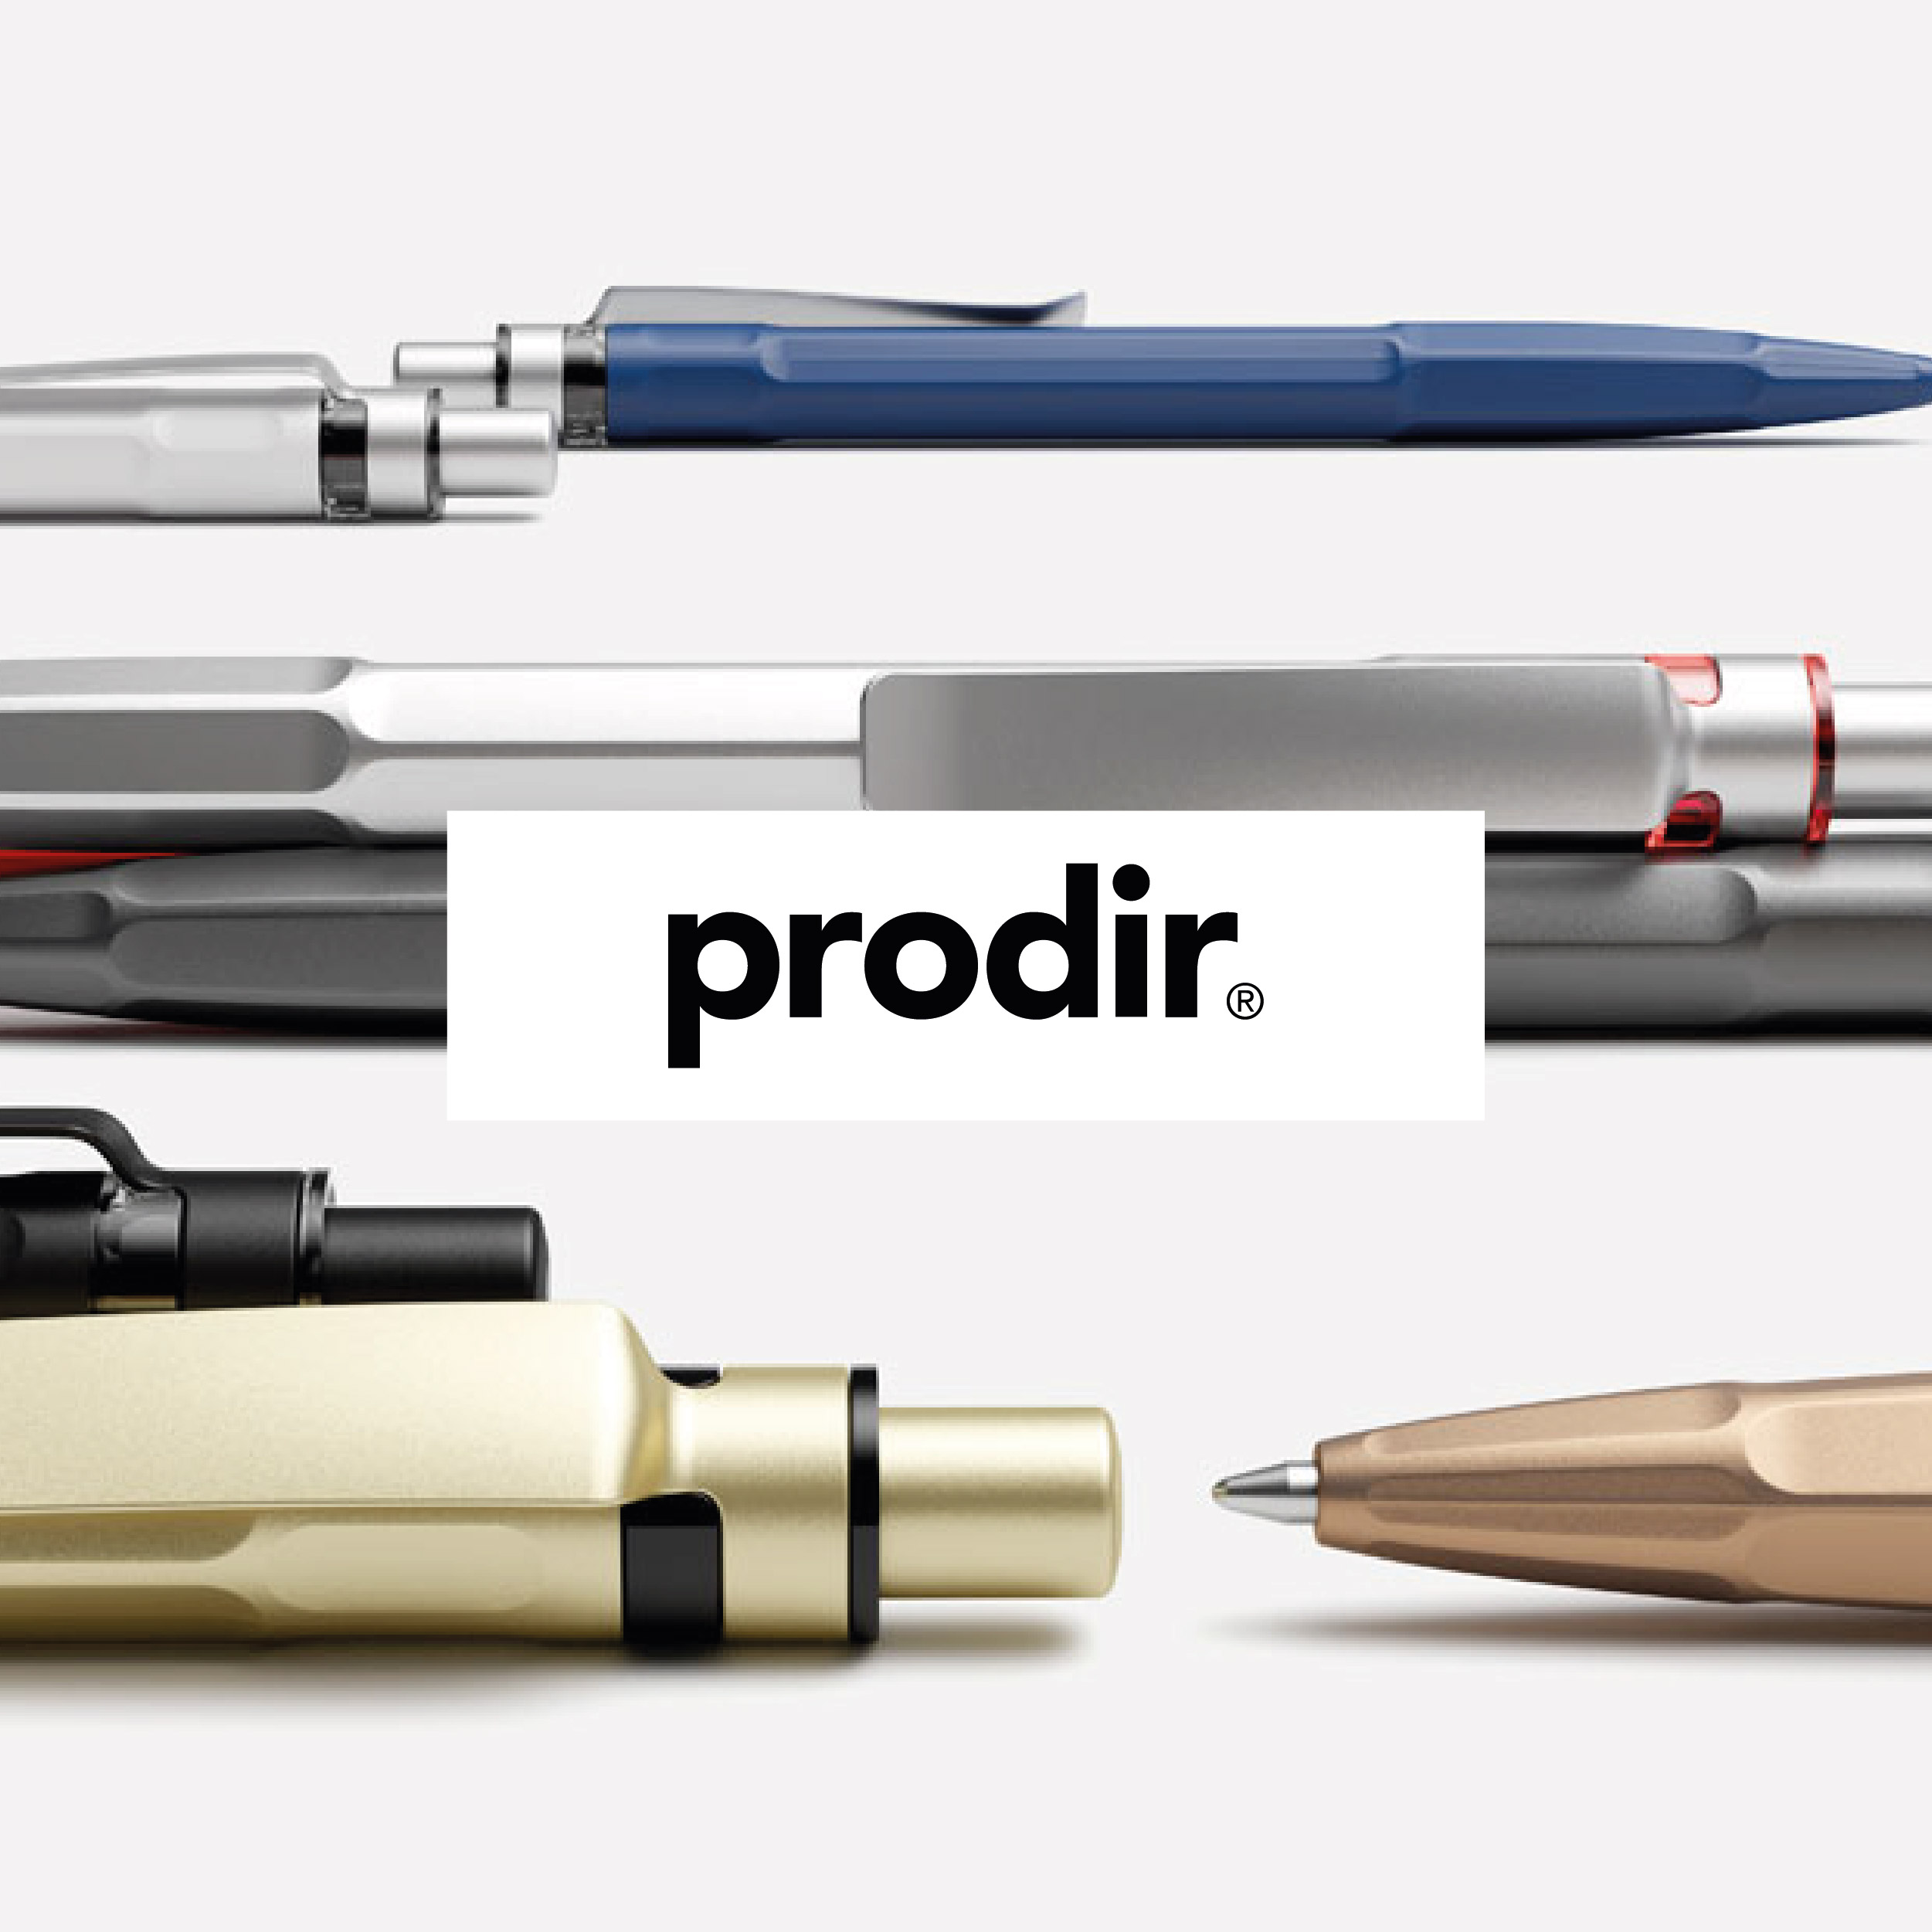 PromoBrand_Prodir_Pens_Promotional_Merchandise_Brands_Bounce_Creative_Designs